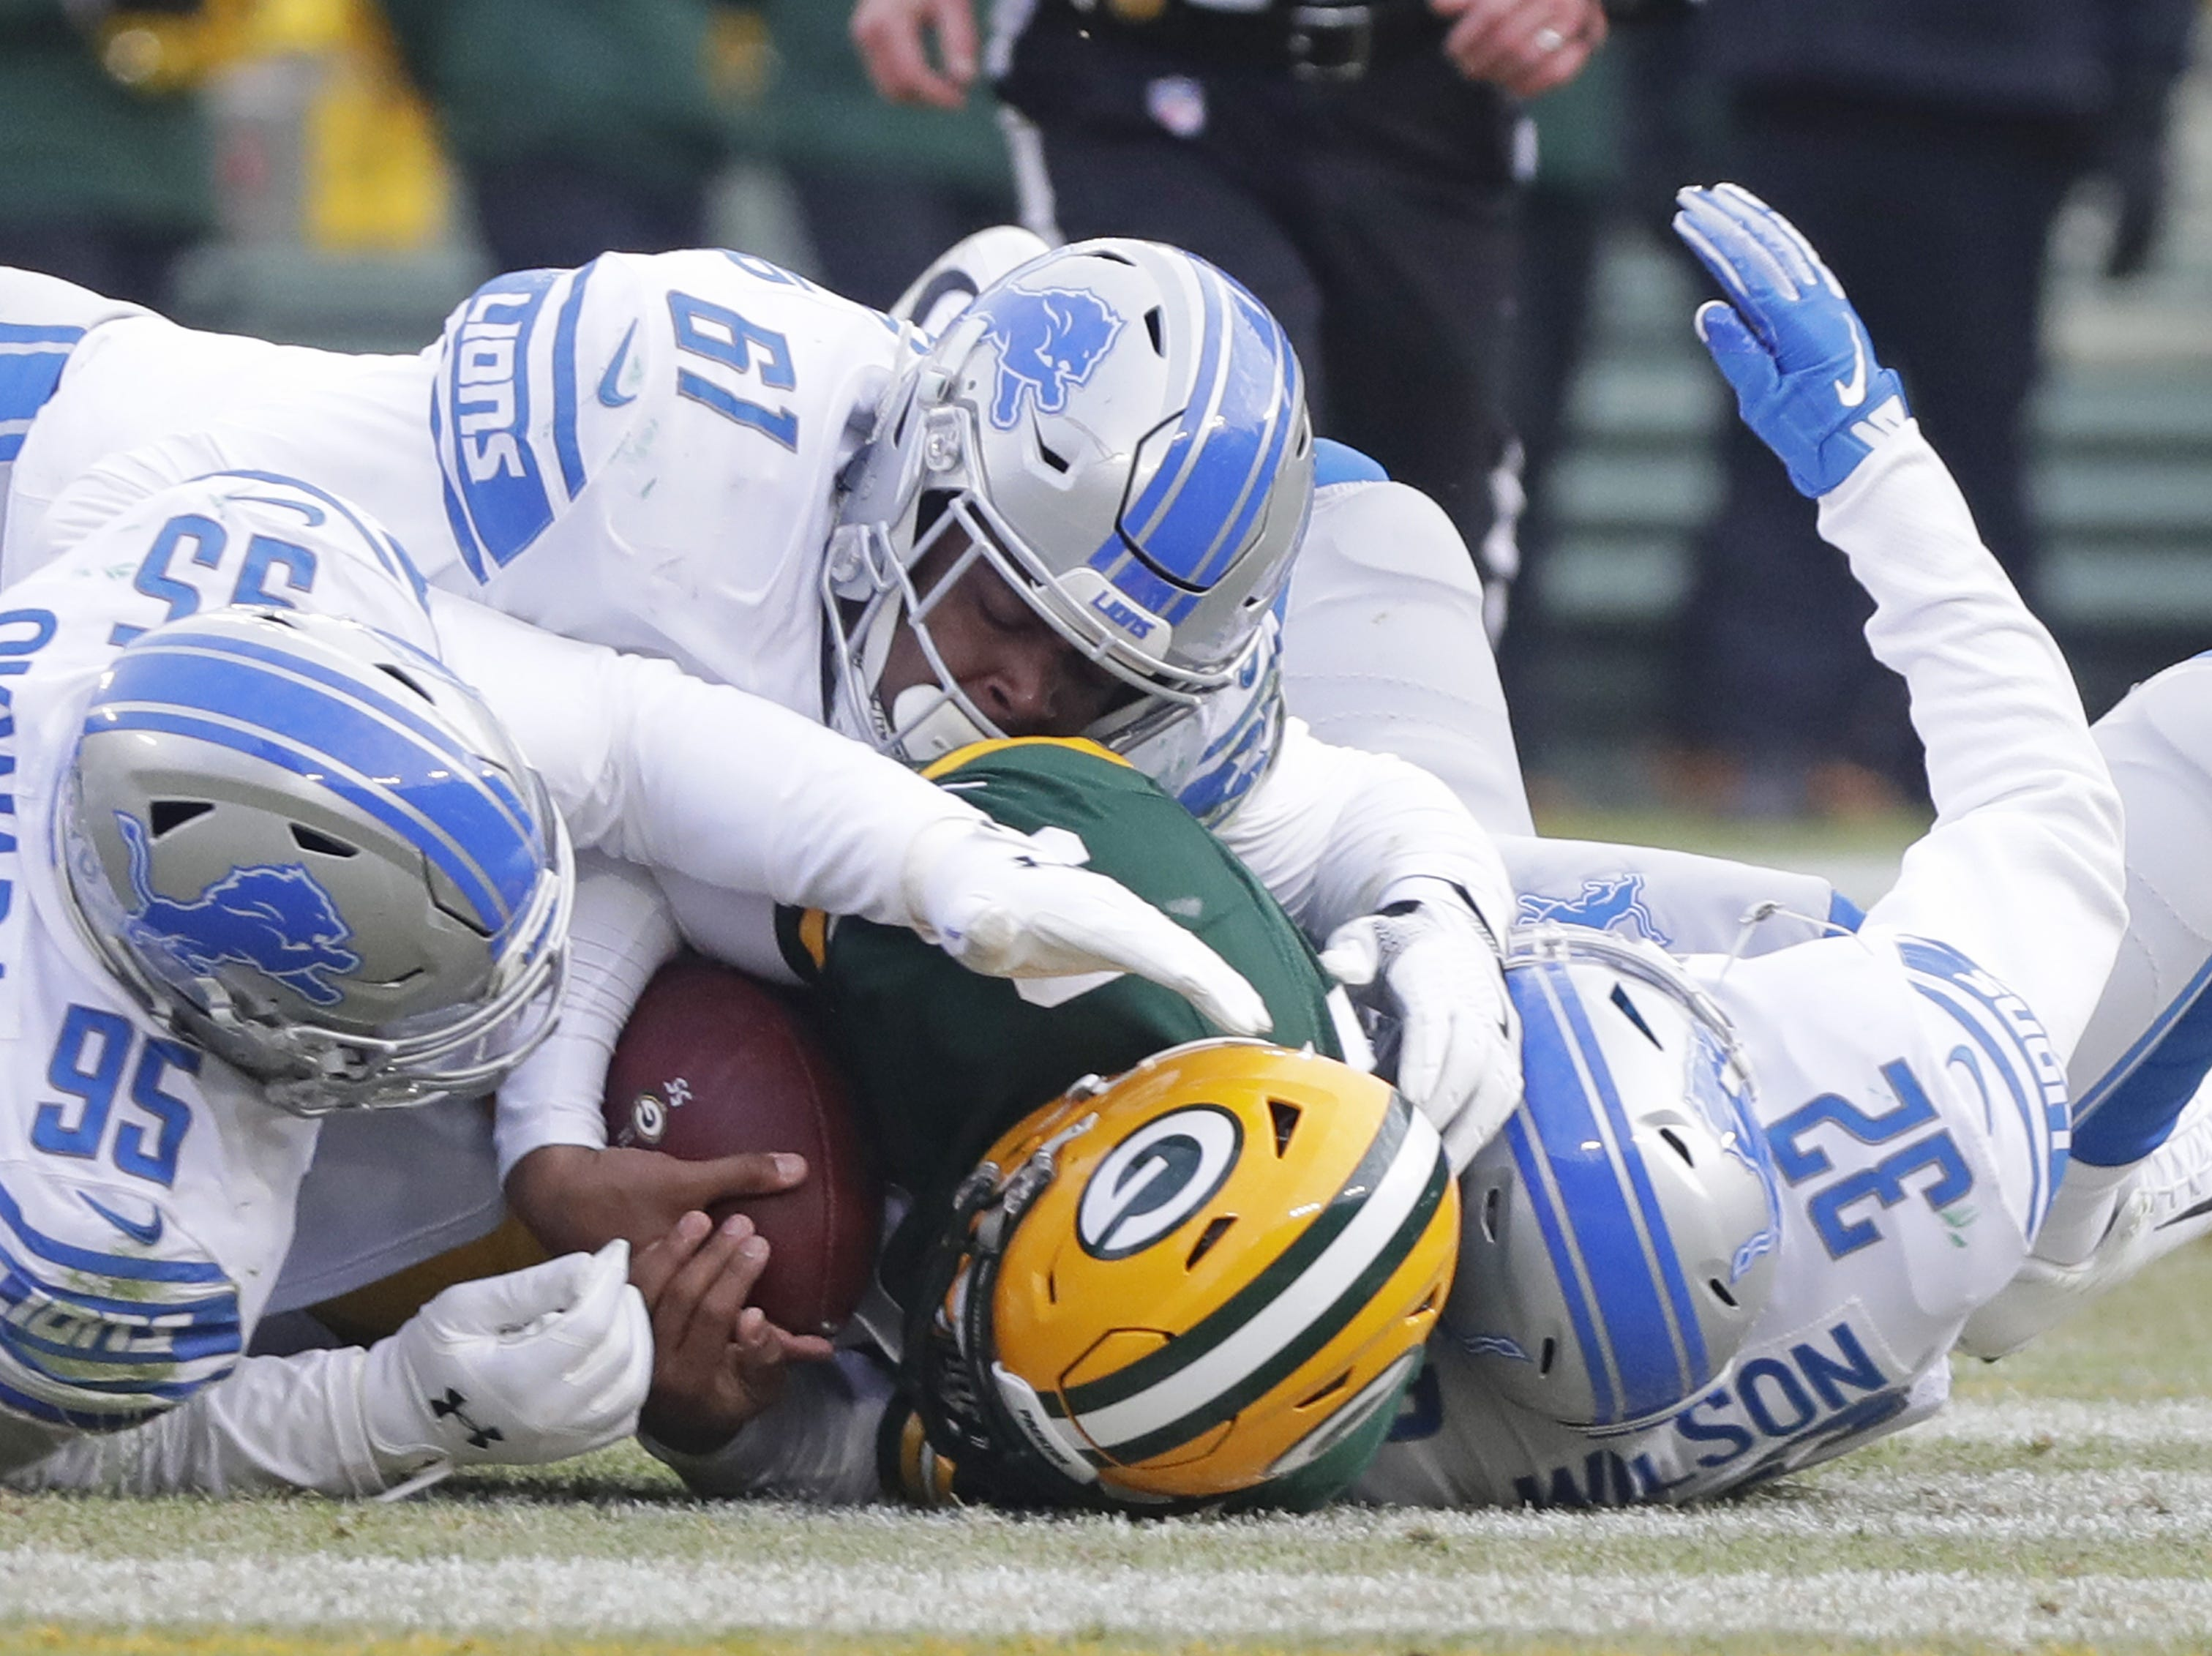 Green Bay Packers quarterback DeShone Kizer (9) is sacked in the fourth quarter against the Detroit Lions at Lambeau Field on Sunday, December 30, 2018 in Green Bay, Wis. Adam Wesley/USA TODAY NETWORK-Wis